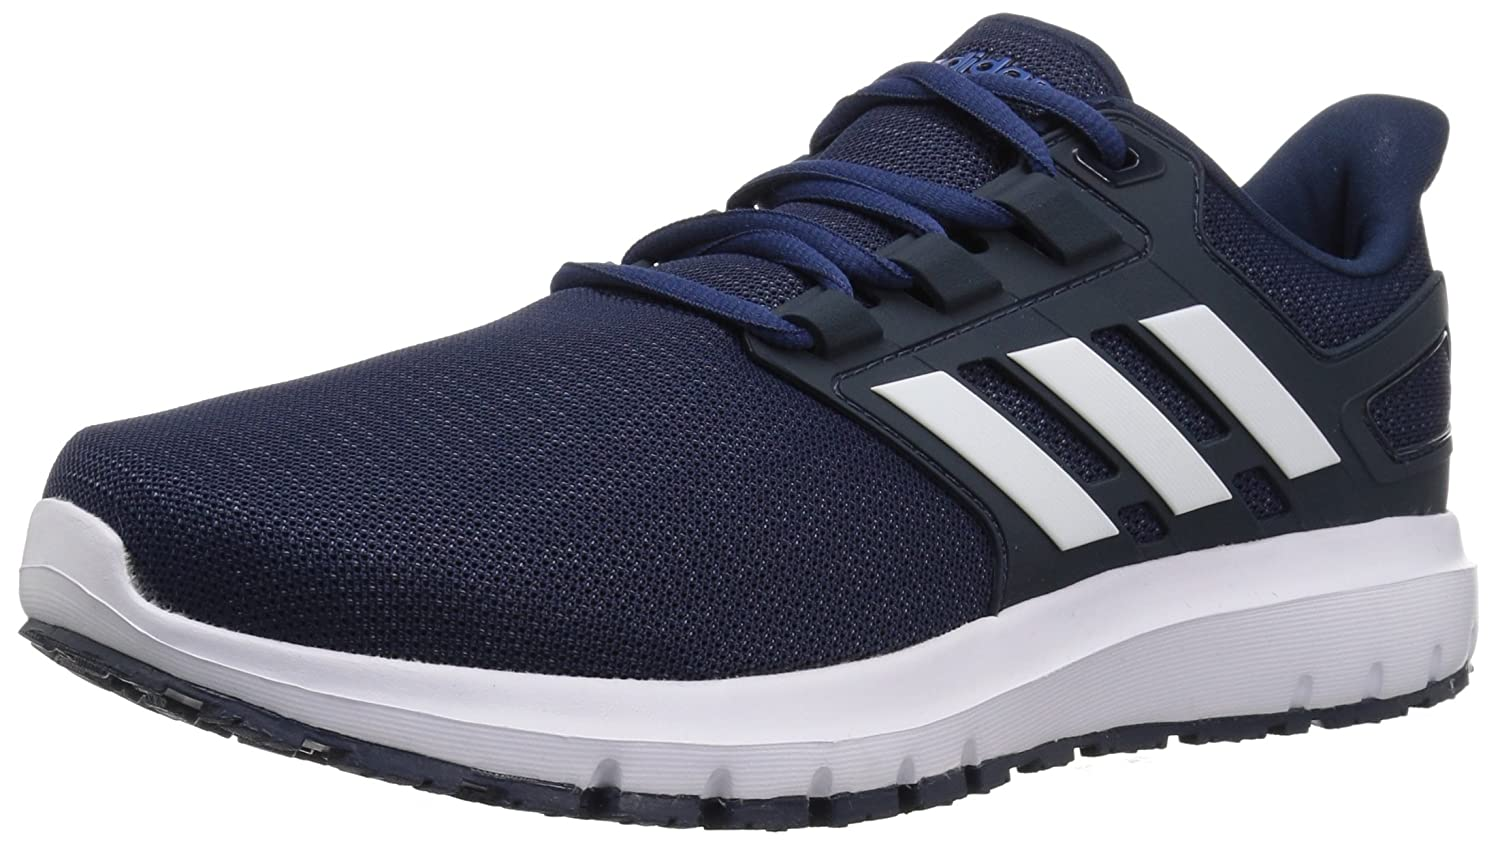 Legend Ink blanc Trace bleu Adidas - Energy Cloud 2 Wide Homme 40 2 3 EU